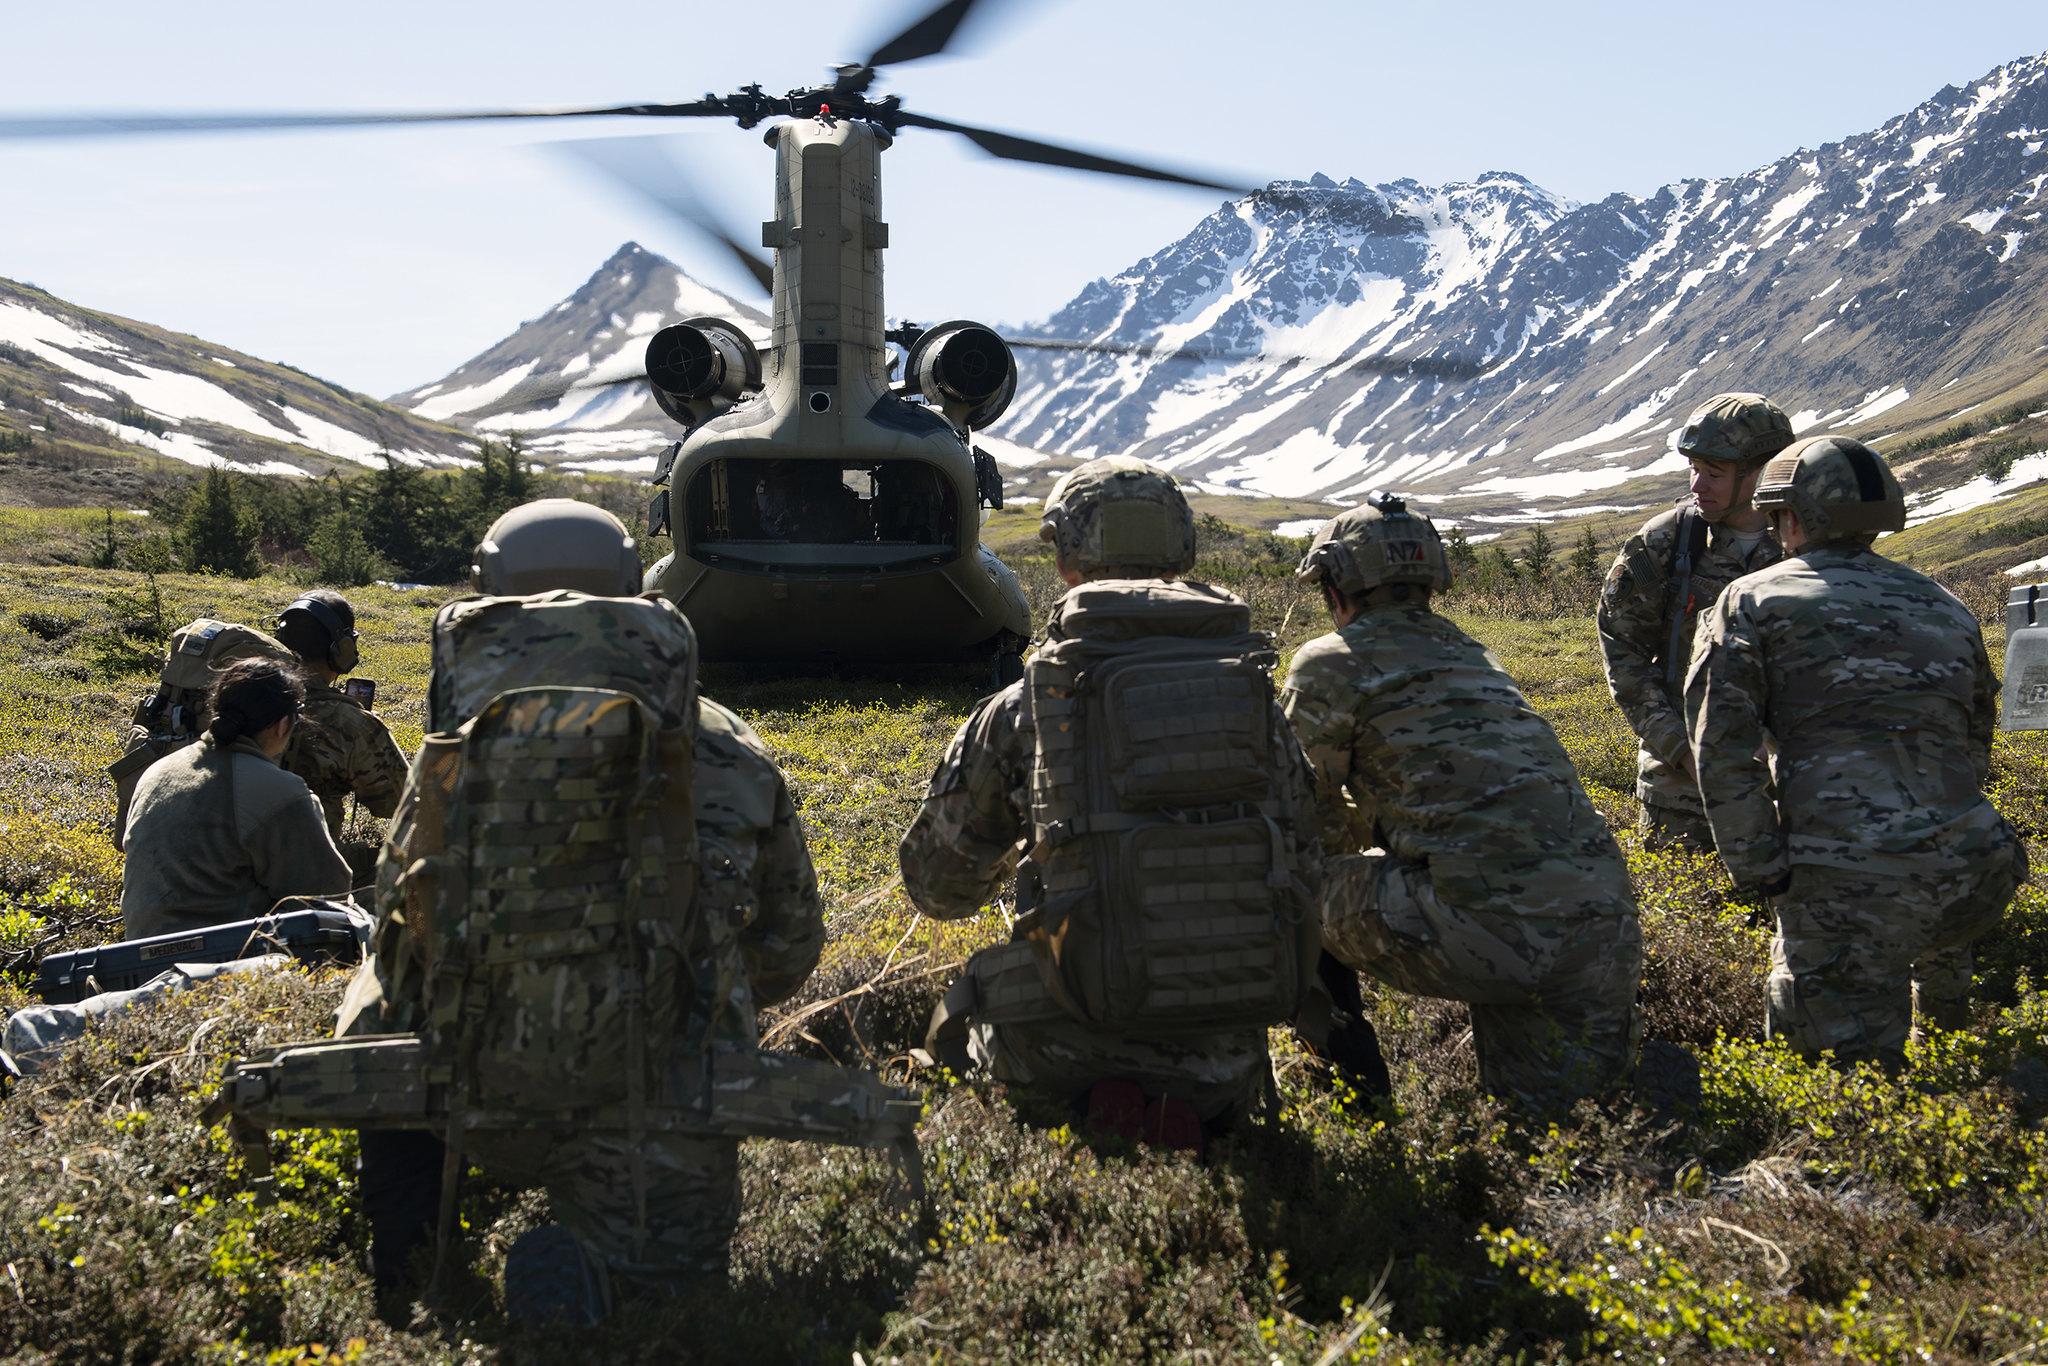 Battlefield airmen with the 3rd Air Support Operations Squadron and Alaska Army National Guard soldiers watch an Army CH-47 Chinook helicopter as it prepares to depart Geronimo Drop Zone during airborne training at Joint Base Elmendorf-Richardson, Alaska, May 28, 2020. (Alejandro Peña/Air Force)